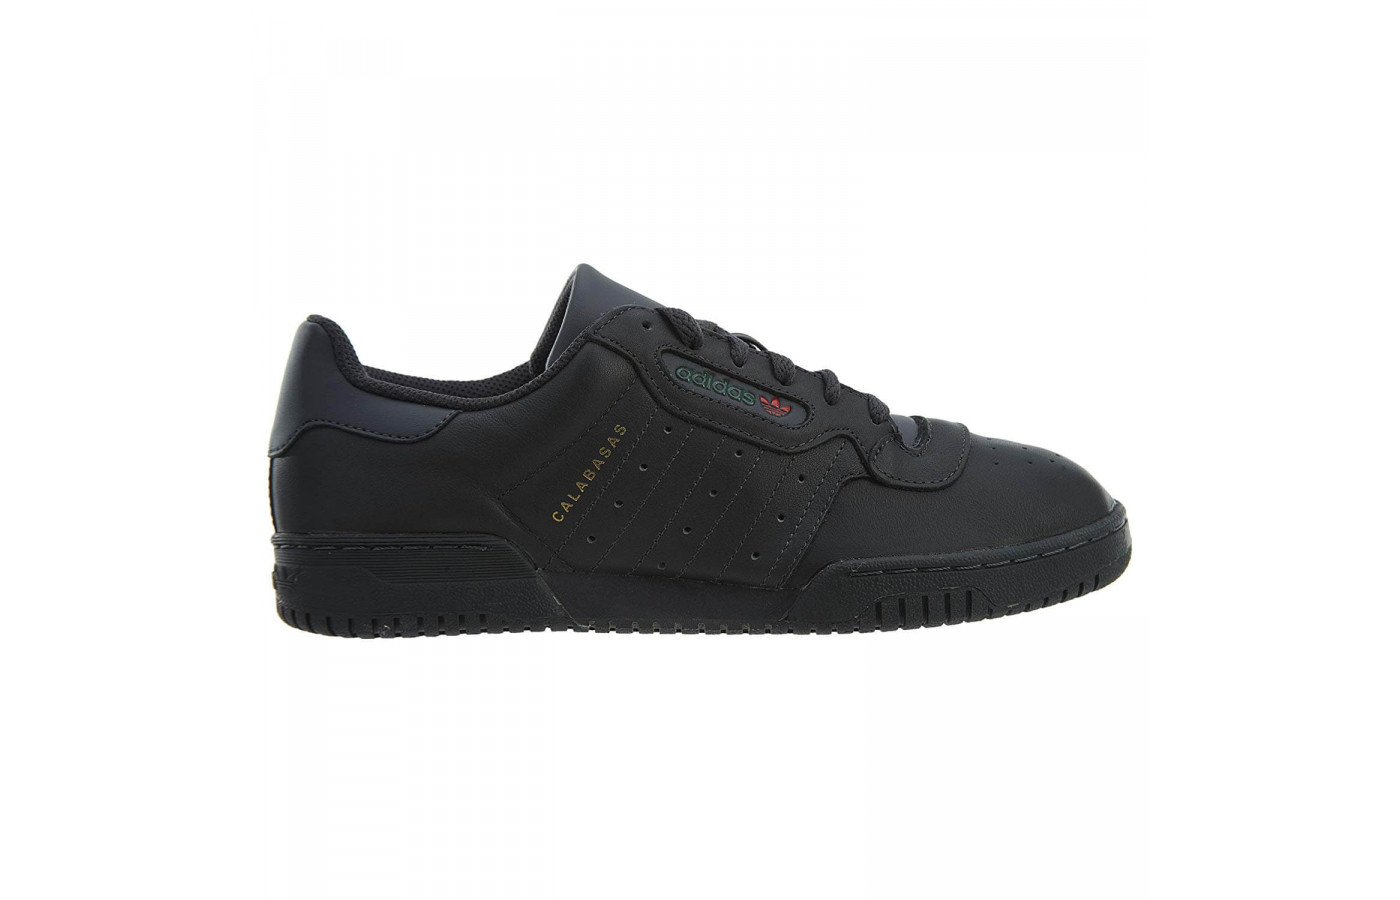 91824a1f00214 Adidas Yeezy Powerphase - To Buy or Not in May 2019